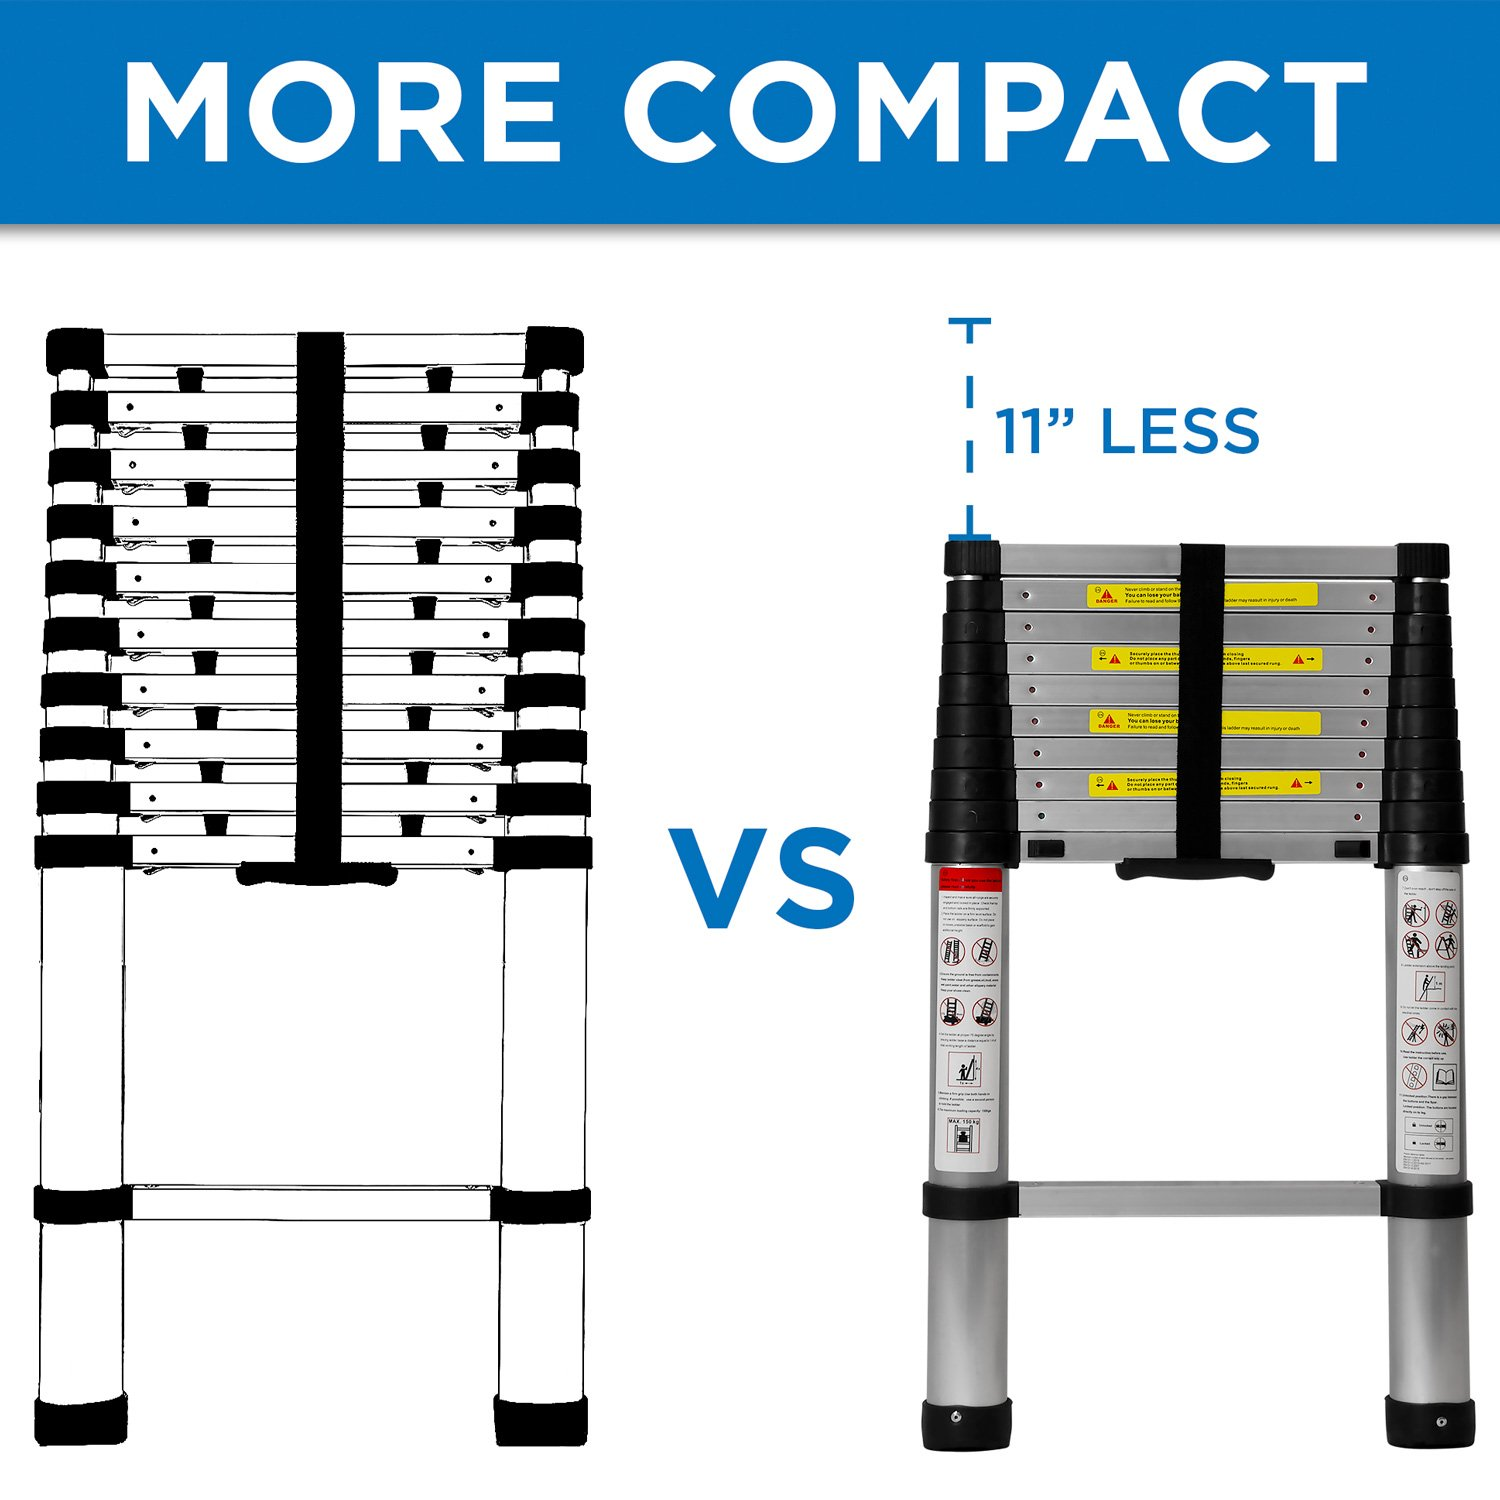 Work-It! Telescoping Ladder 10.5 Ft - Aluminum Extension Ladder with Soft Close Spring Function, EN131 Certified 330 lbs Capacity by Work-It! (Image #5)